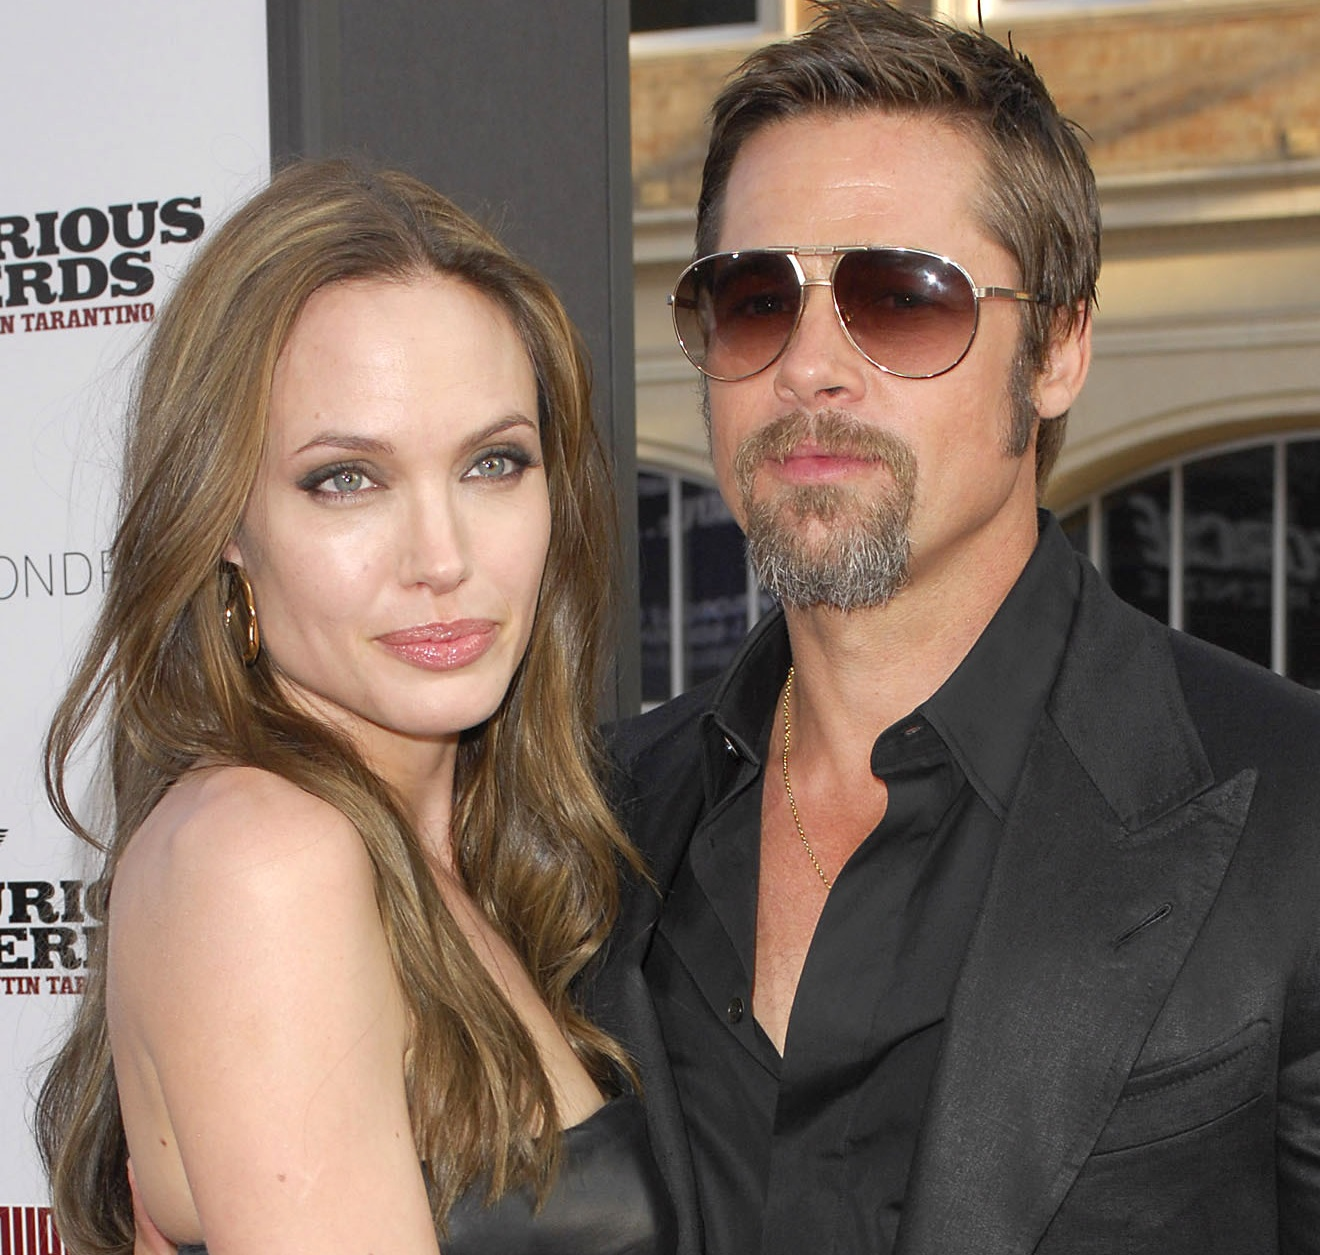 Pitt, Jolie meet Obama at White House